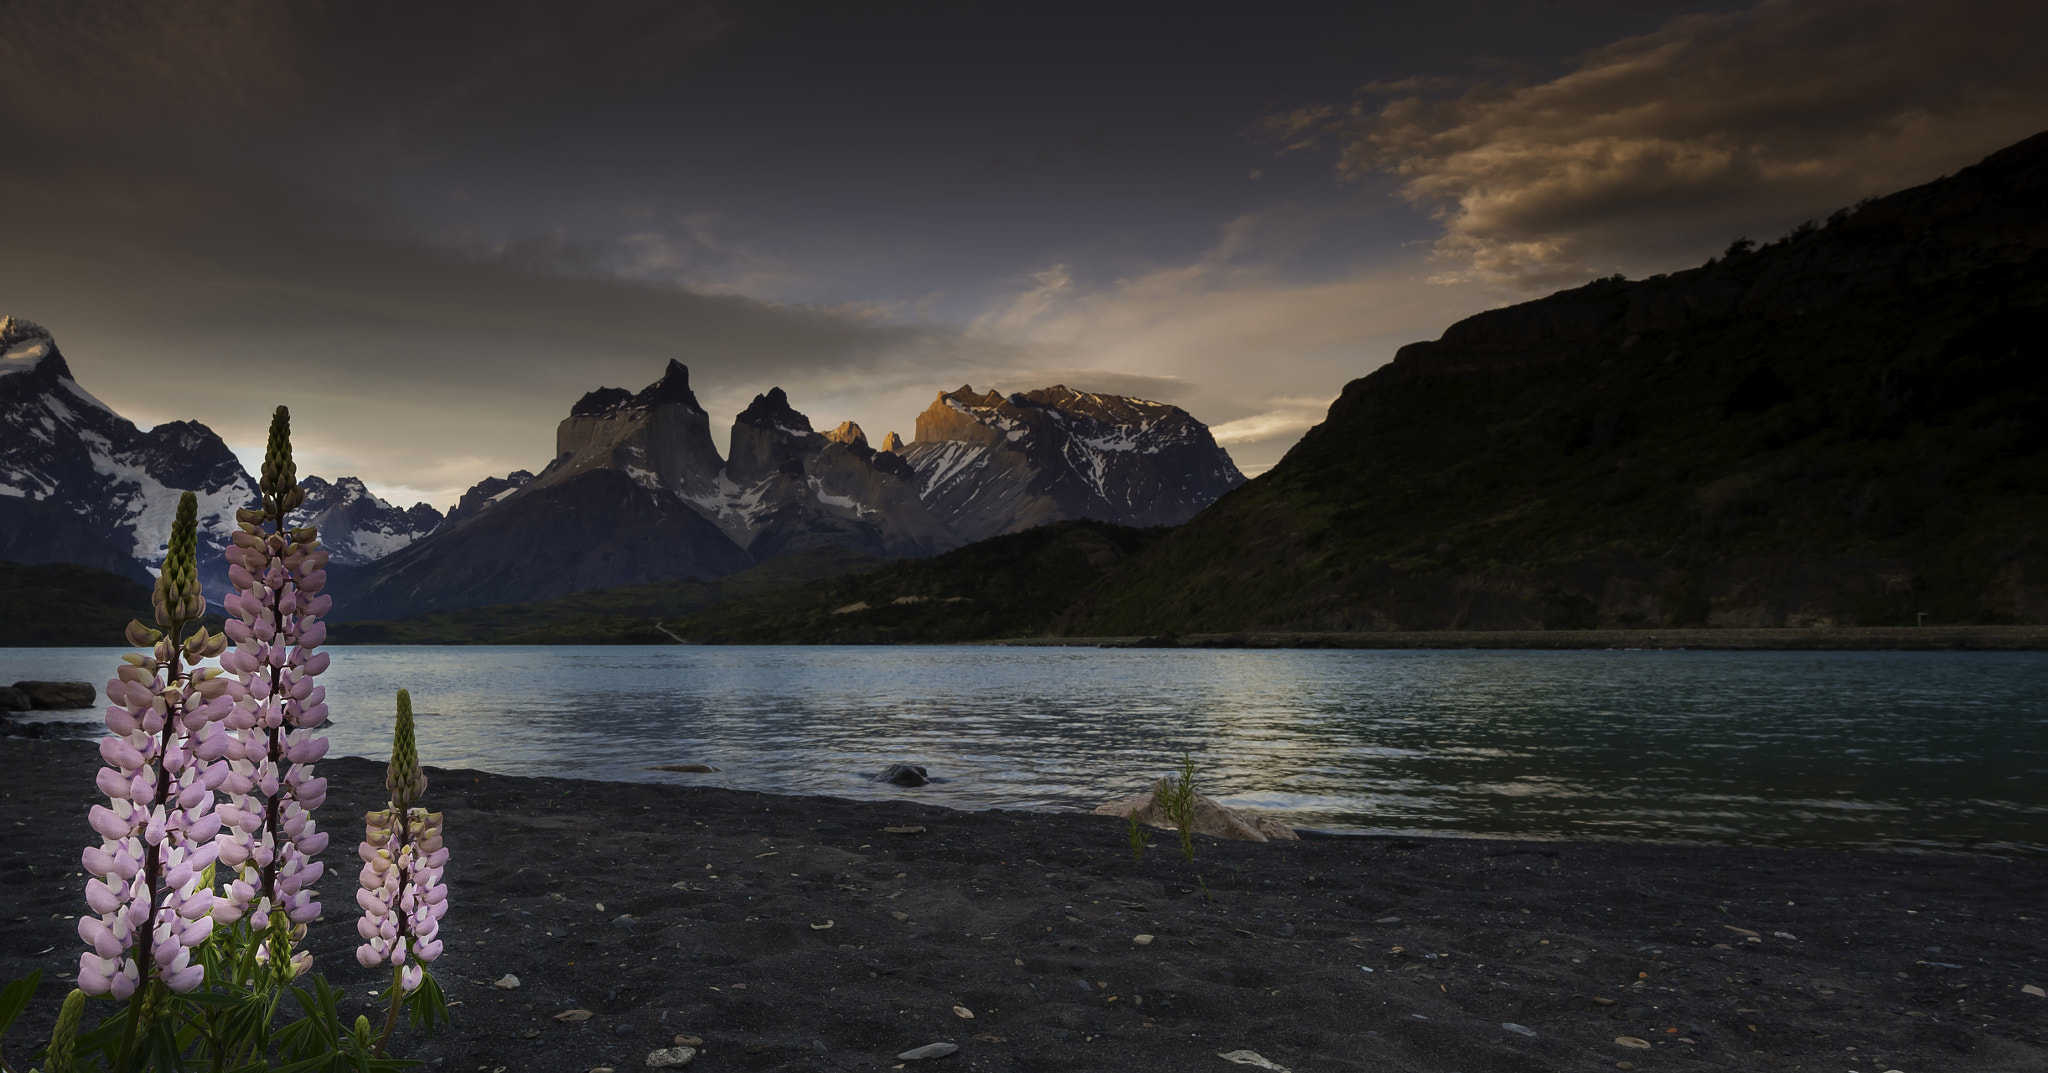 Photograph Patagonia by Michael Leggero on 500px